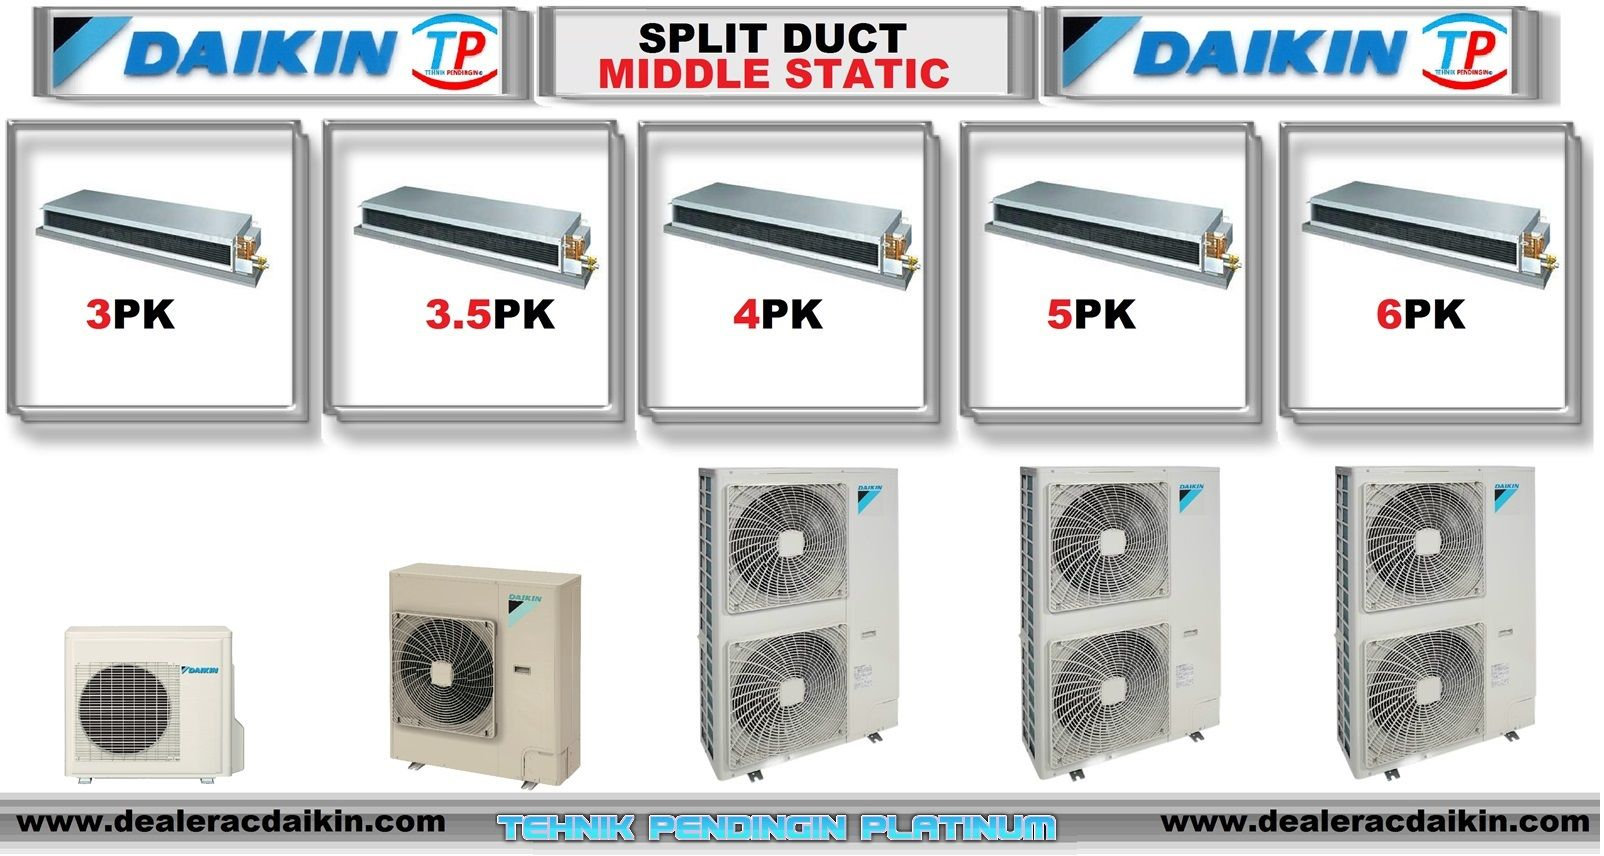 Ac Split Duct Daikin 5 Pk Middle Static Daikin Airconditioner